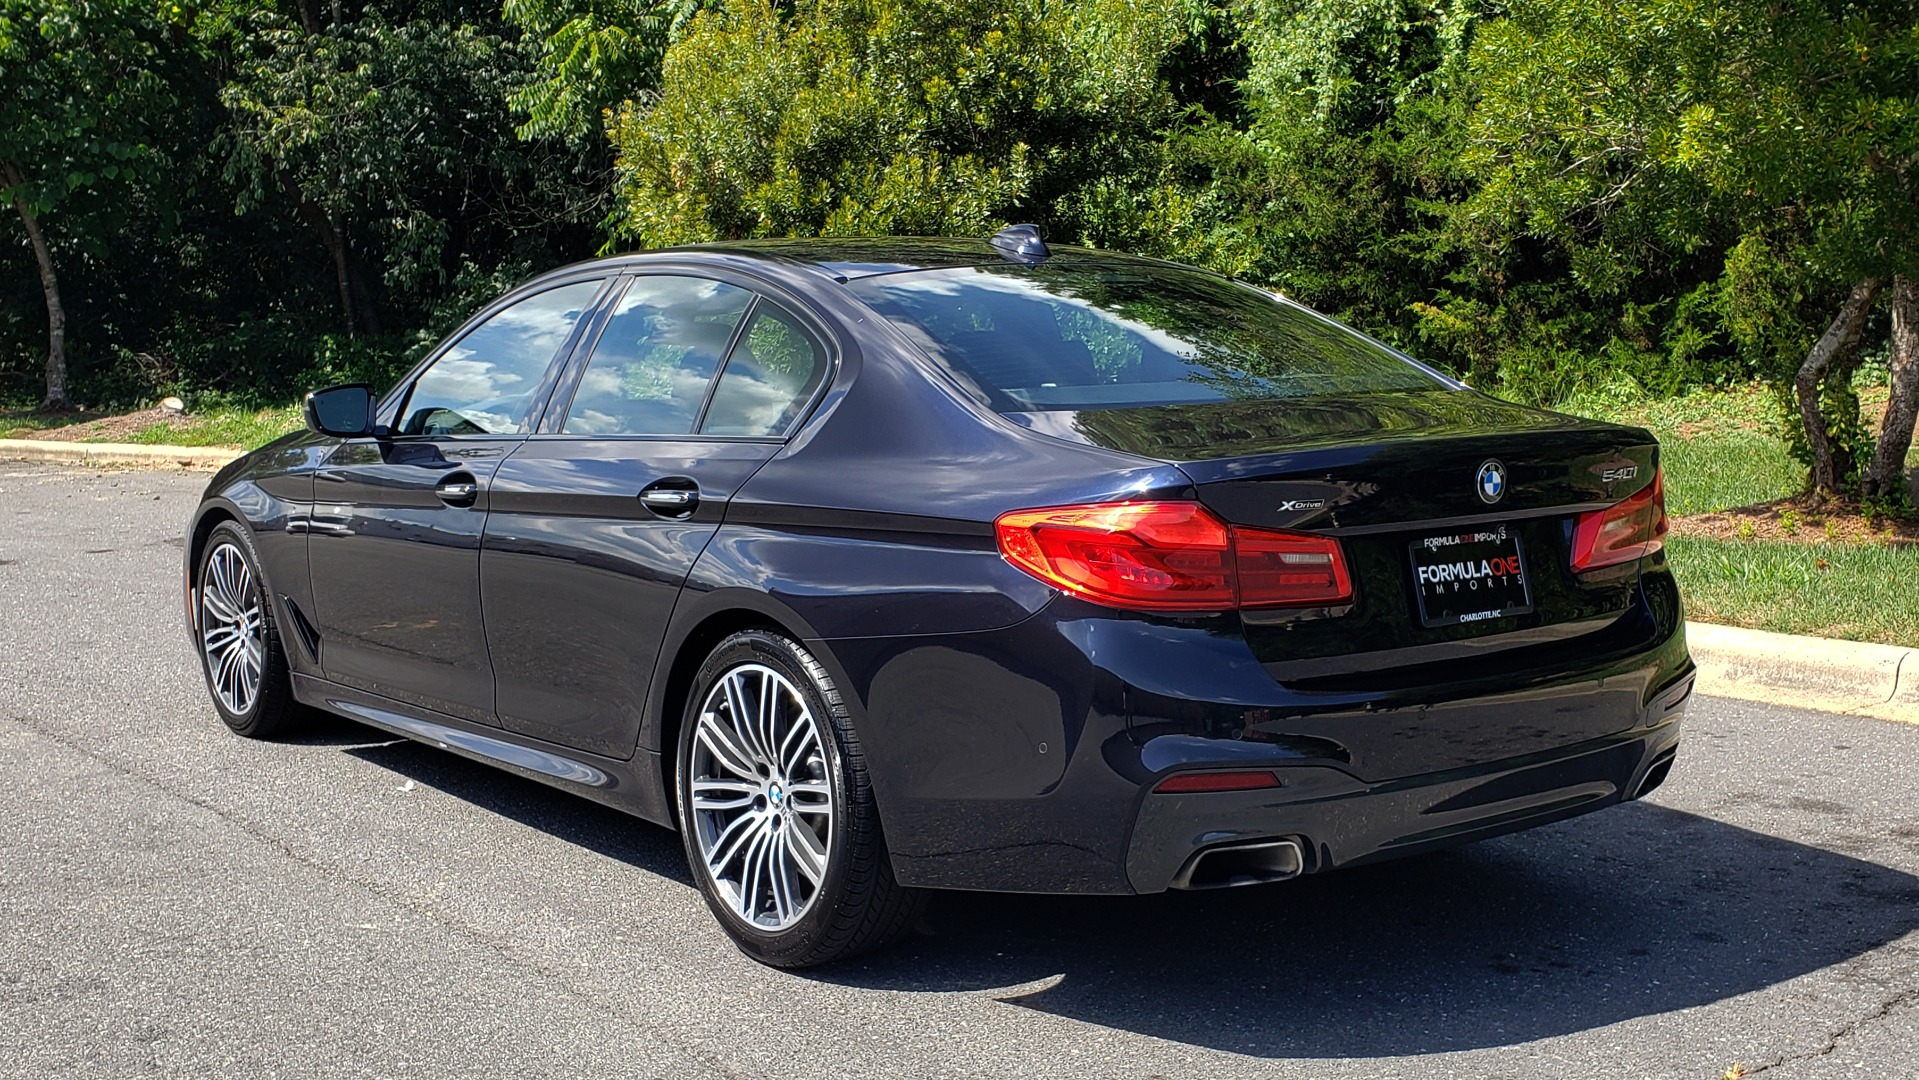 Used 2017 BMW 5 SERIES 540I XDRIVE M-SPORT / PREMIUM / NAV / HUD / SUNROOF / REARVIEW for sale $34,995 at Formula Imports in Charlotte NC 28227 3